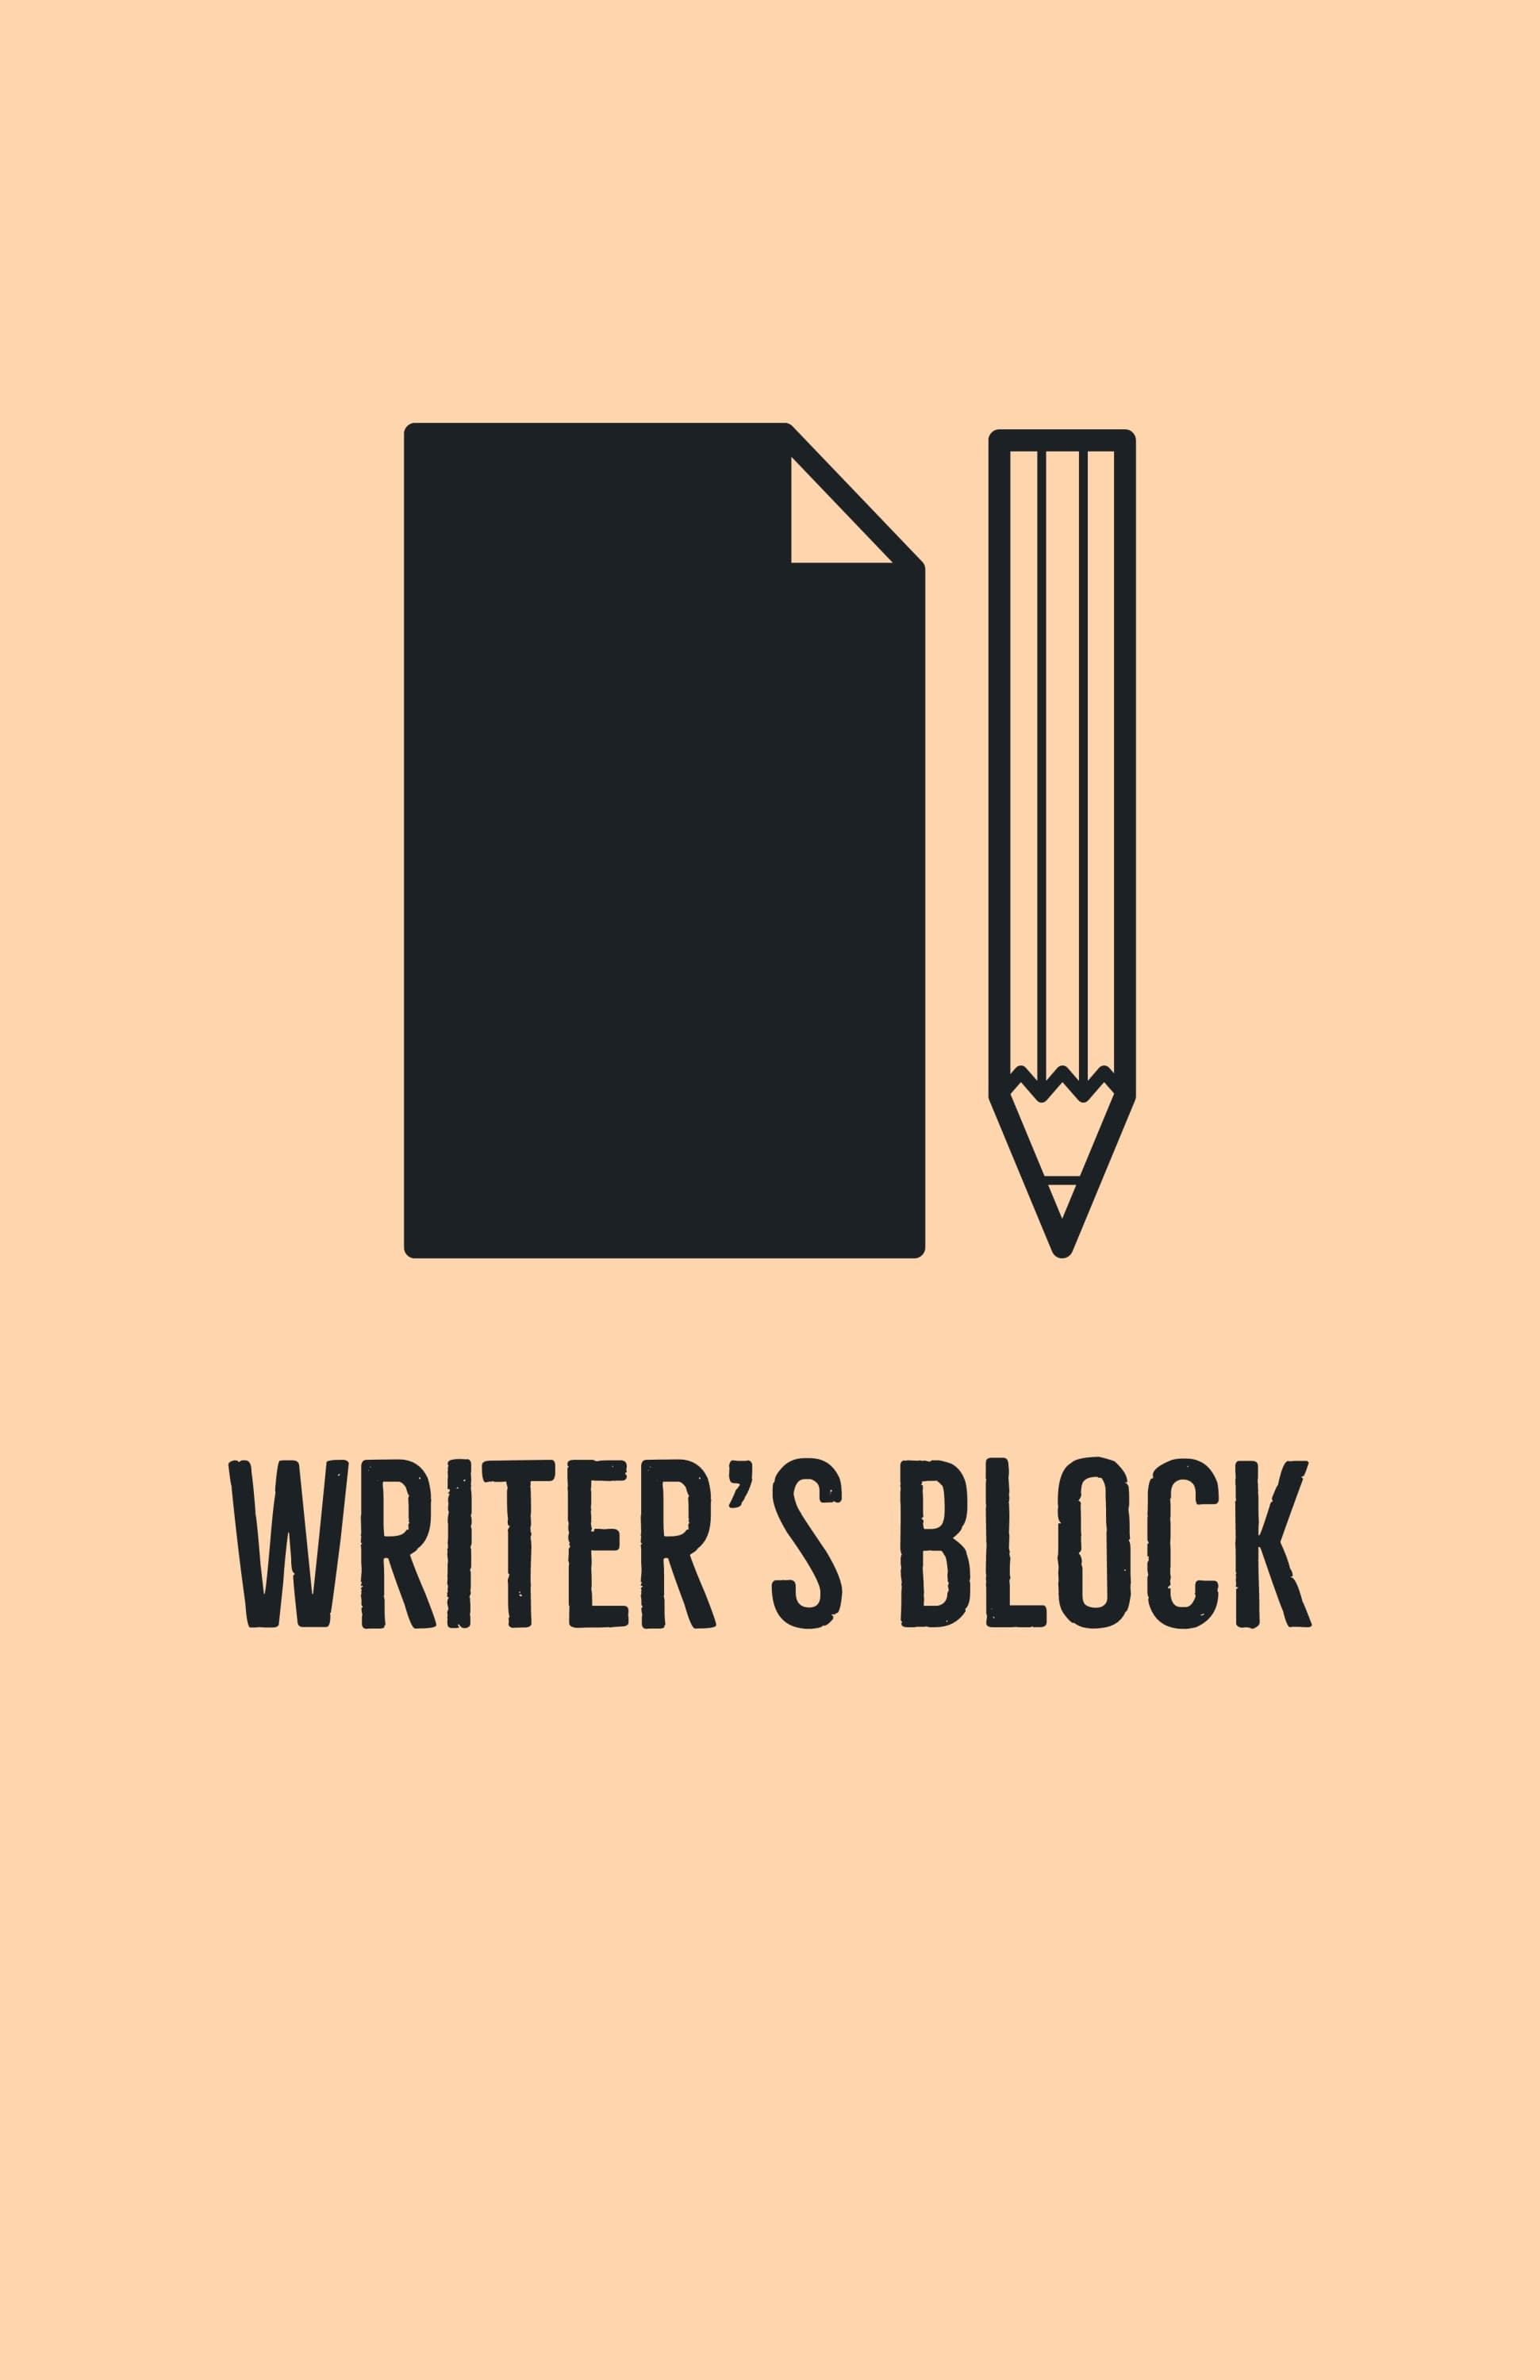 writer s block rant s opinion I confirmed that, despite a menu of cocktails containing vaguely medicinal ingredients (anti-inflammatory turmeric and probiotic kombucha), the whimsically named writer's block rehab offers only hemingway's preferred brand of therapy.